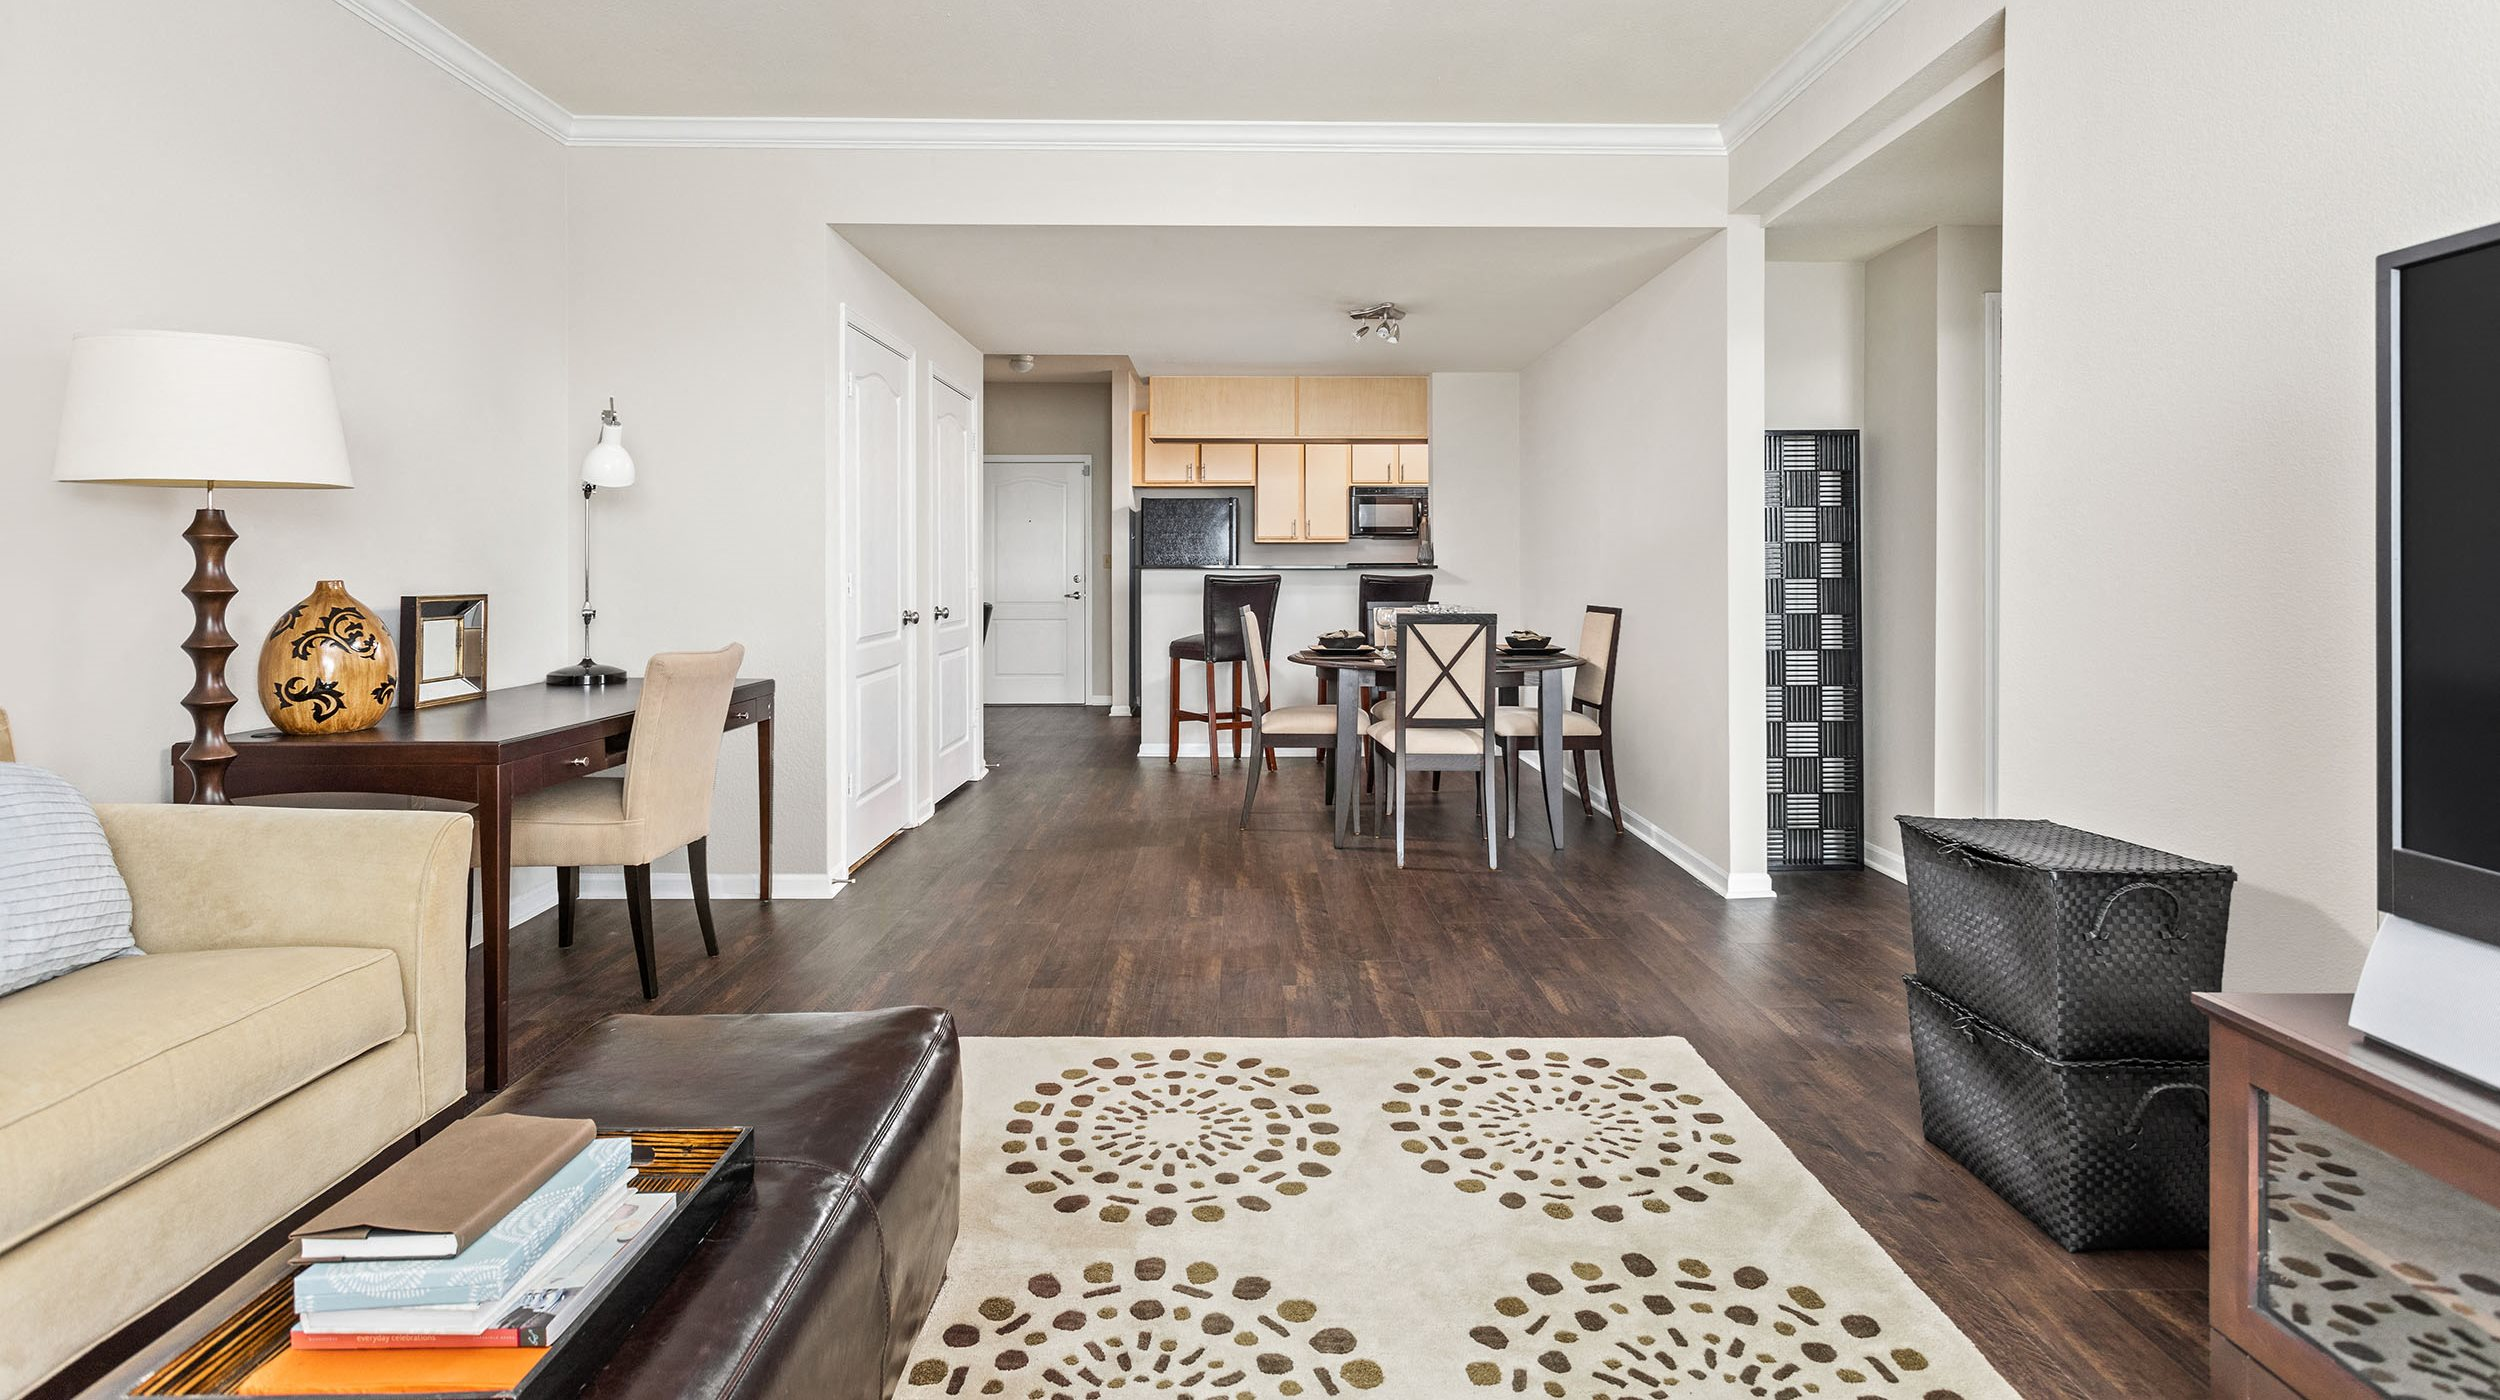 Open Floor Plan - Kings Landing Apartment Homes